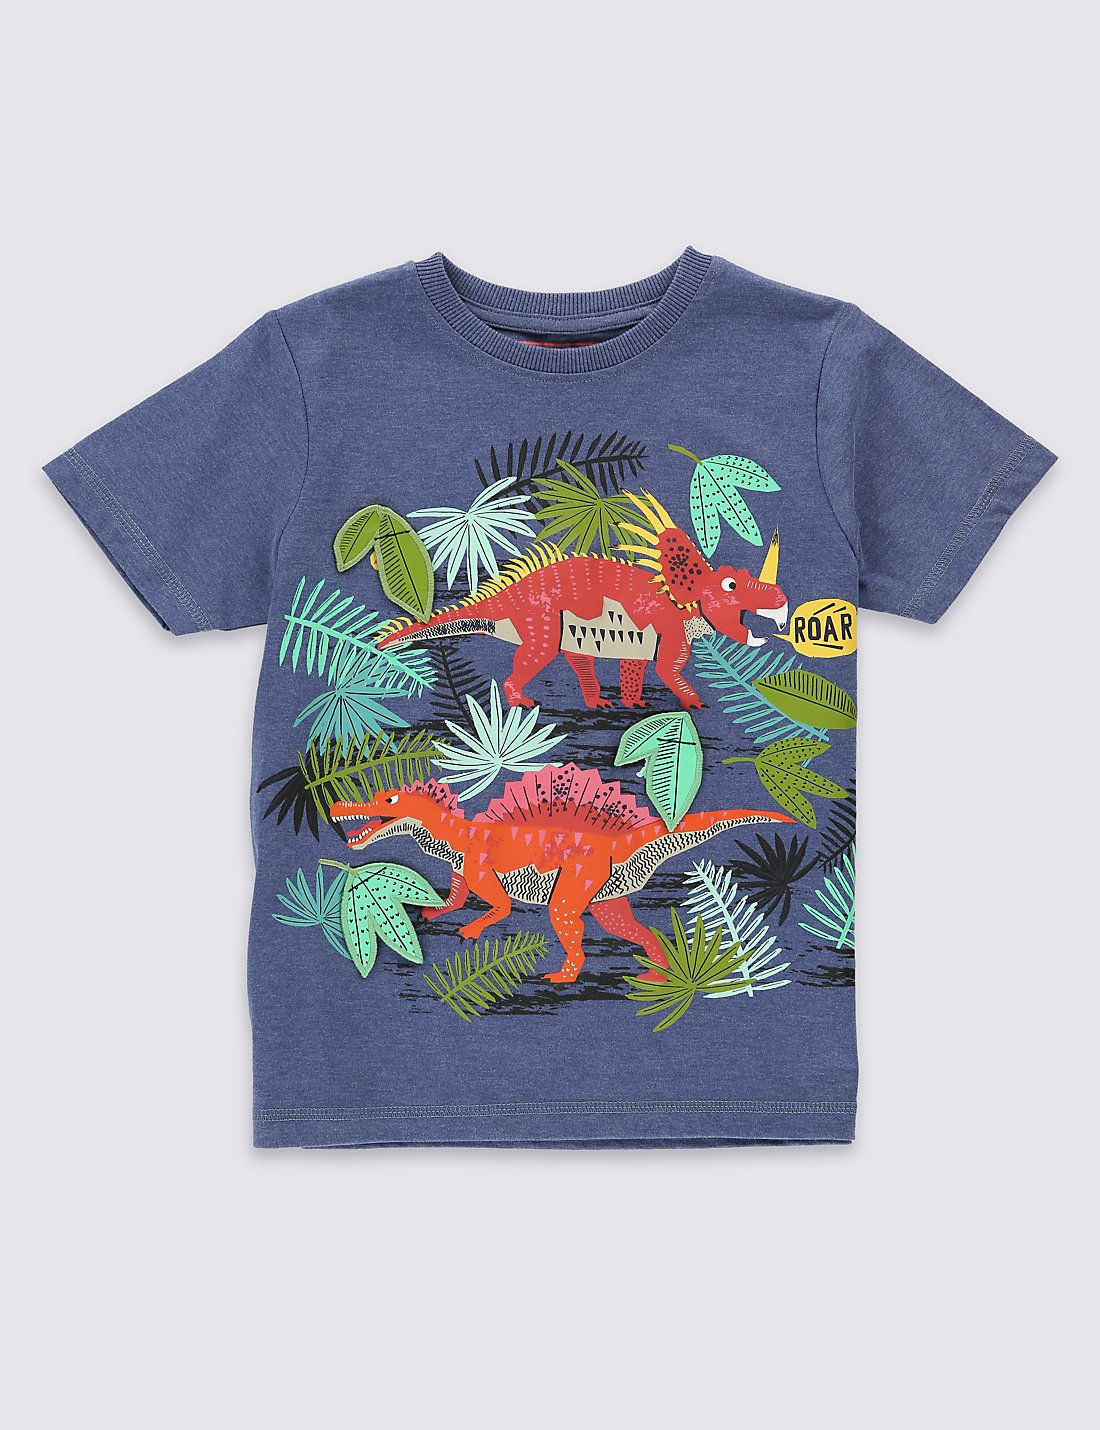 089b33e3a Dinosaur Print T-Shirt (1-7 Years) | pattern on clothes | Kids ...